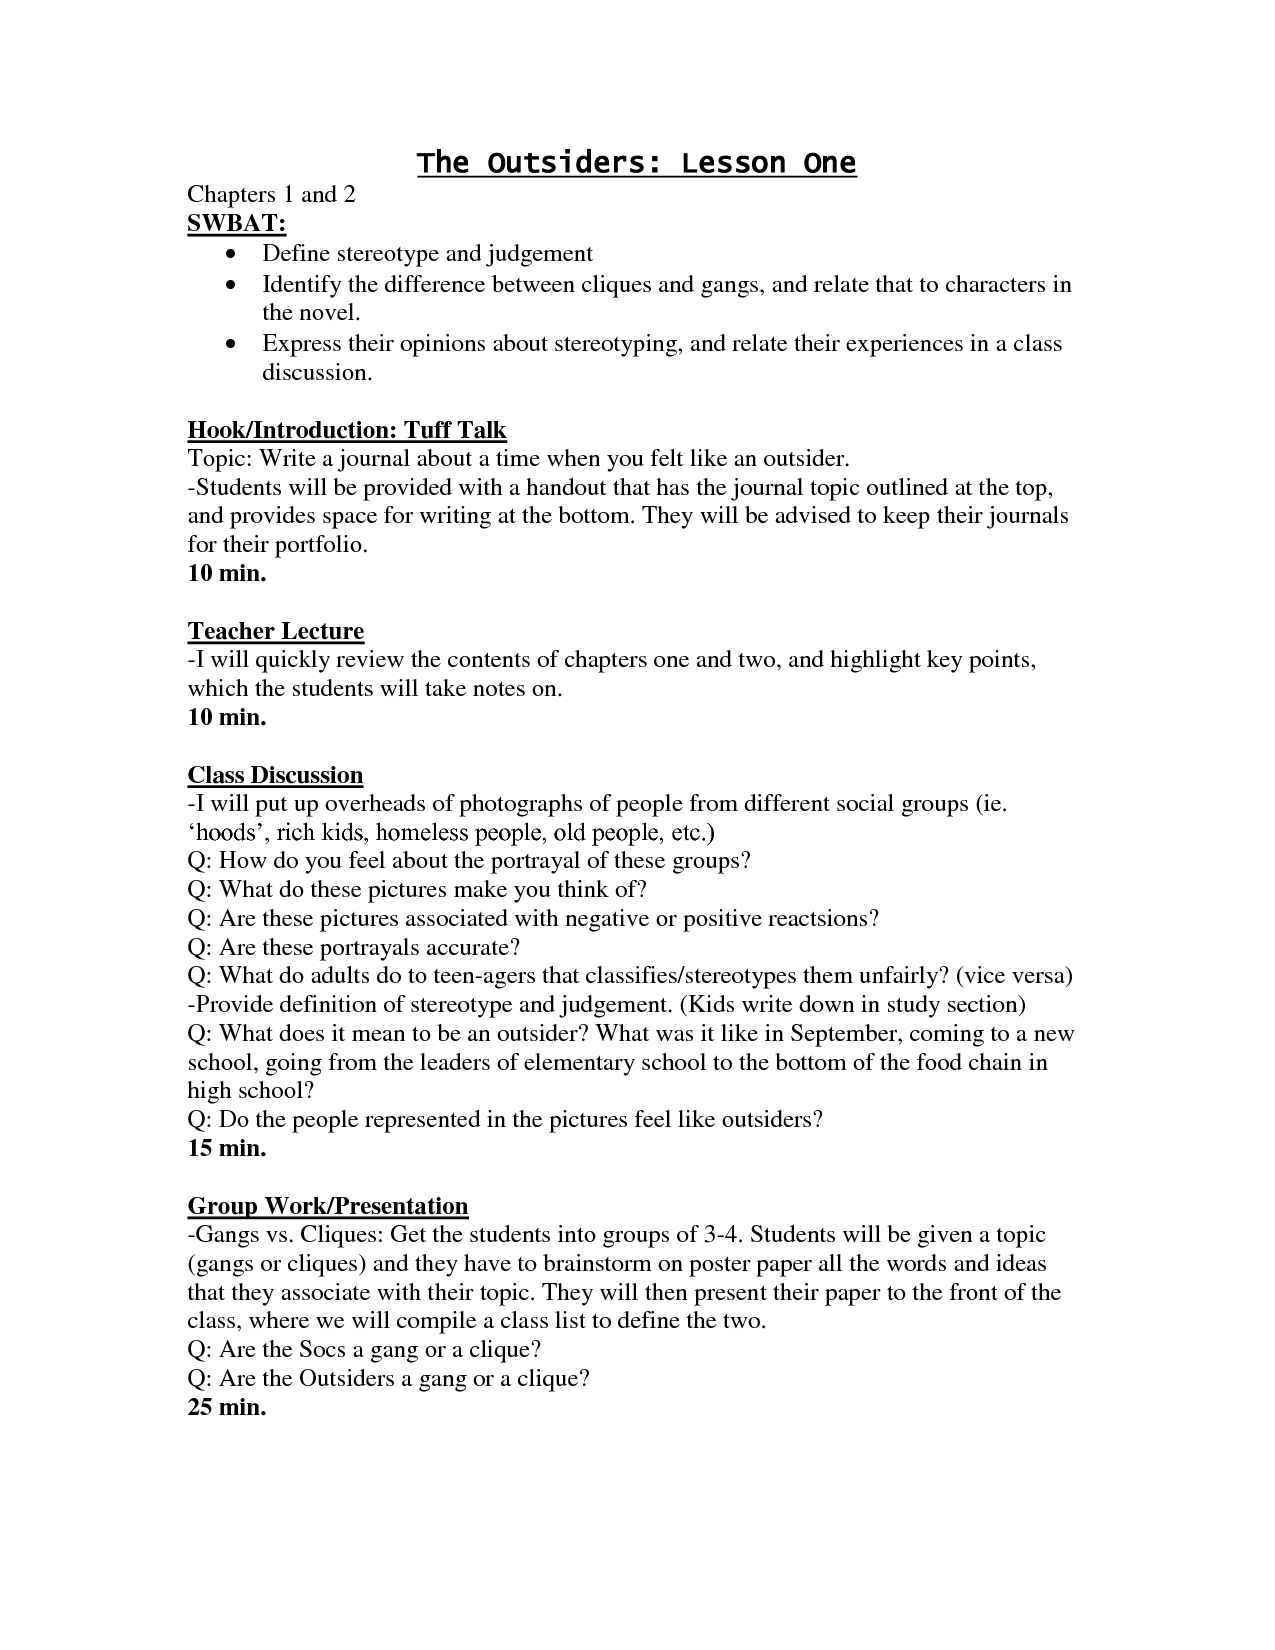 Tv show review essay assignment